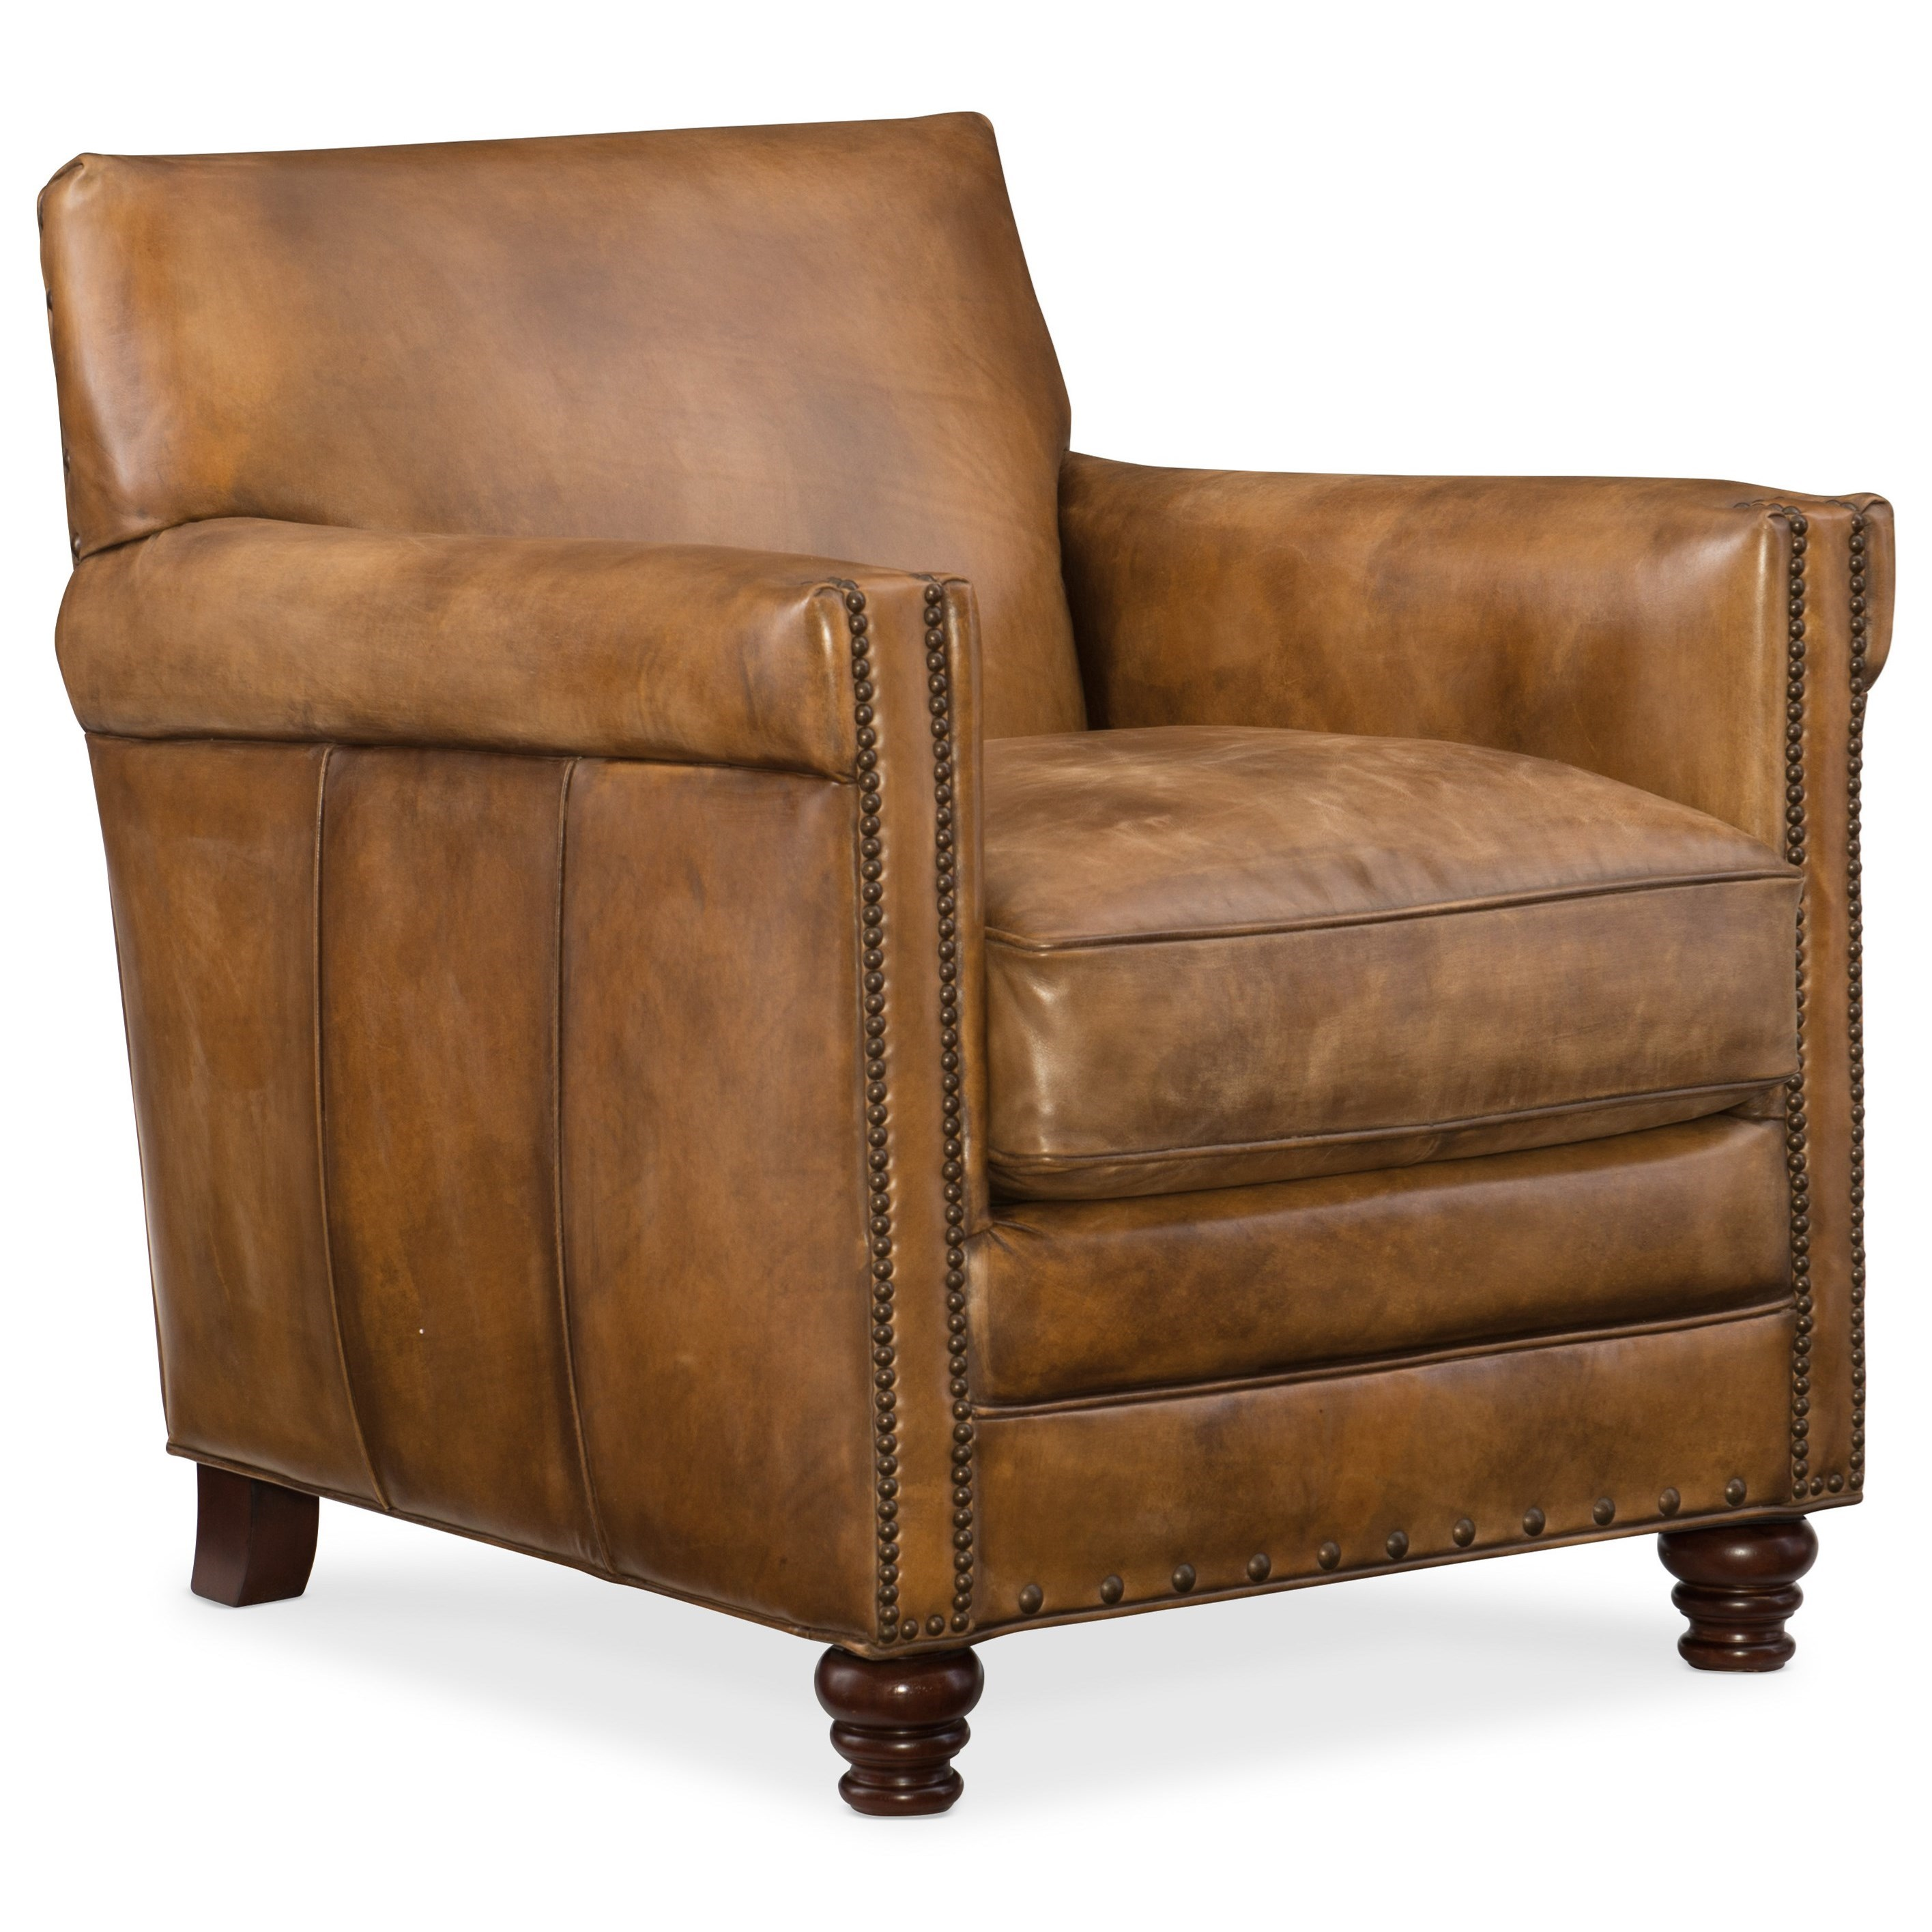 Hamilton home club chairs potter leather club chair with for Small club chairs upholstered